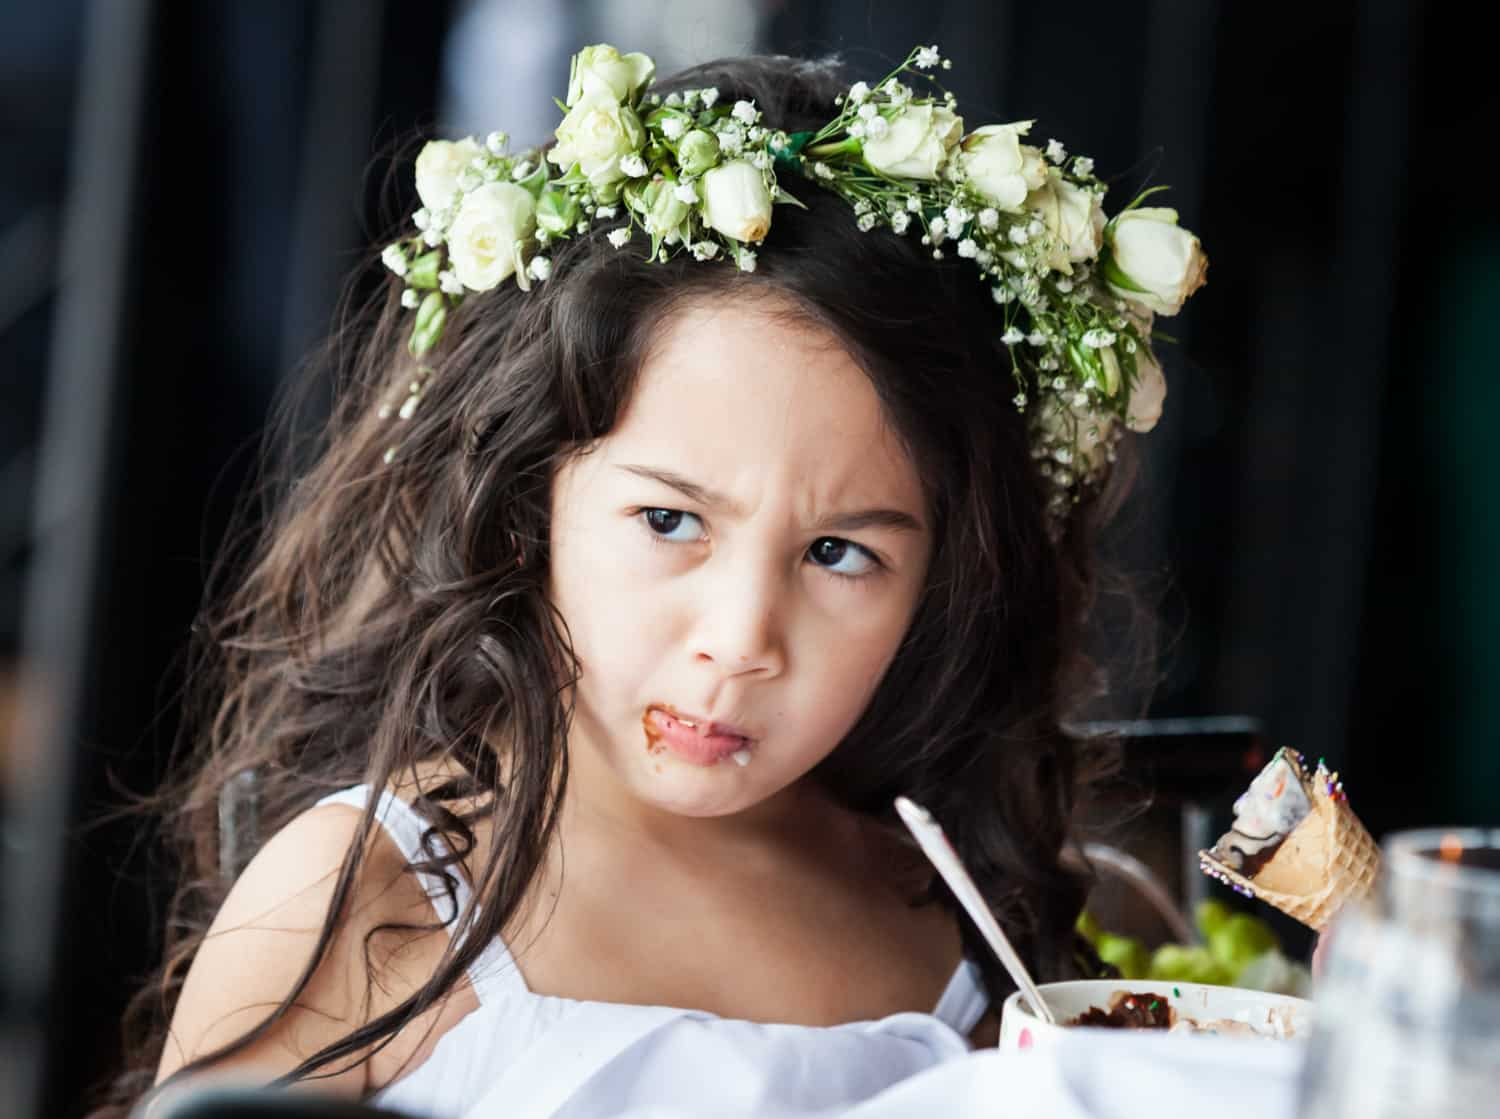 Flower girl with chocolate over her mouth wearing flower crown